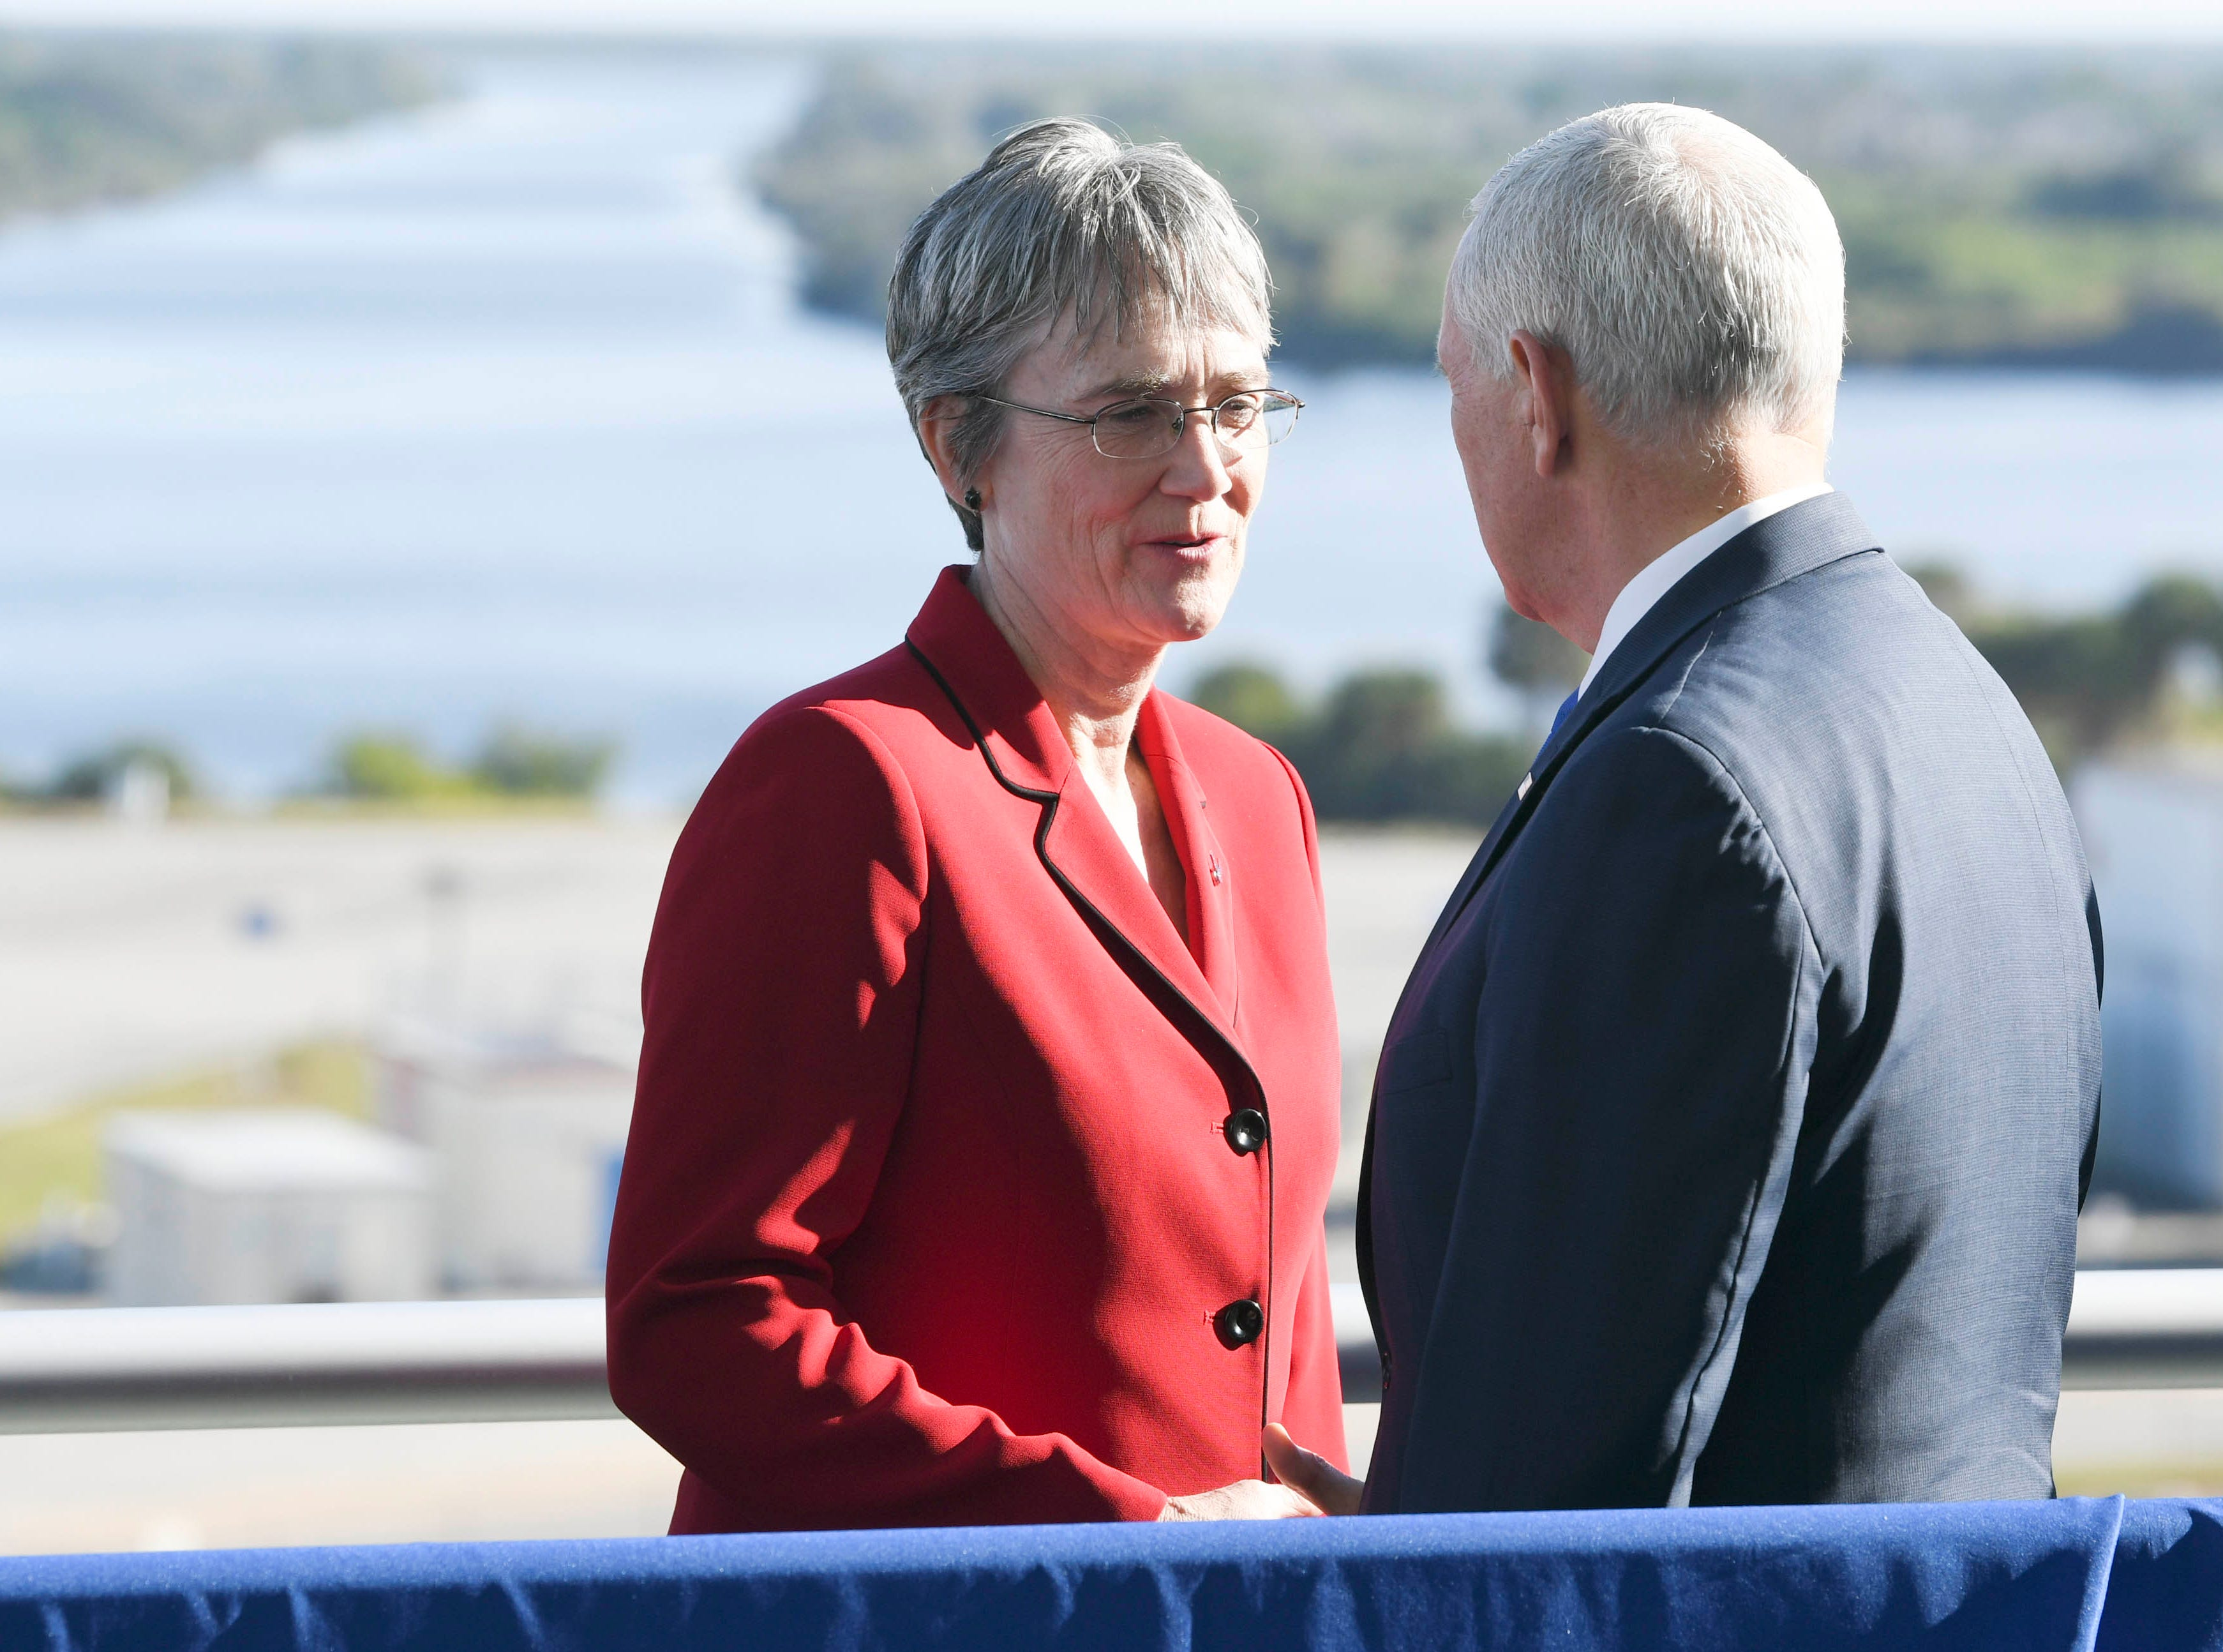 U.S. Vice President Mike Pence speaks with Secretary of the Air Force Heather Wilson at Kennedy Space Center, Tuesday, December 18, 2018.  Pence today announced the creation of a US military unified command for space.Mandatory Credit: Craig Bailey/FLORIDA TODAY via USA TODAY NETWORK